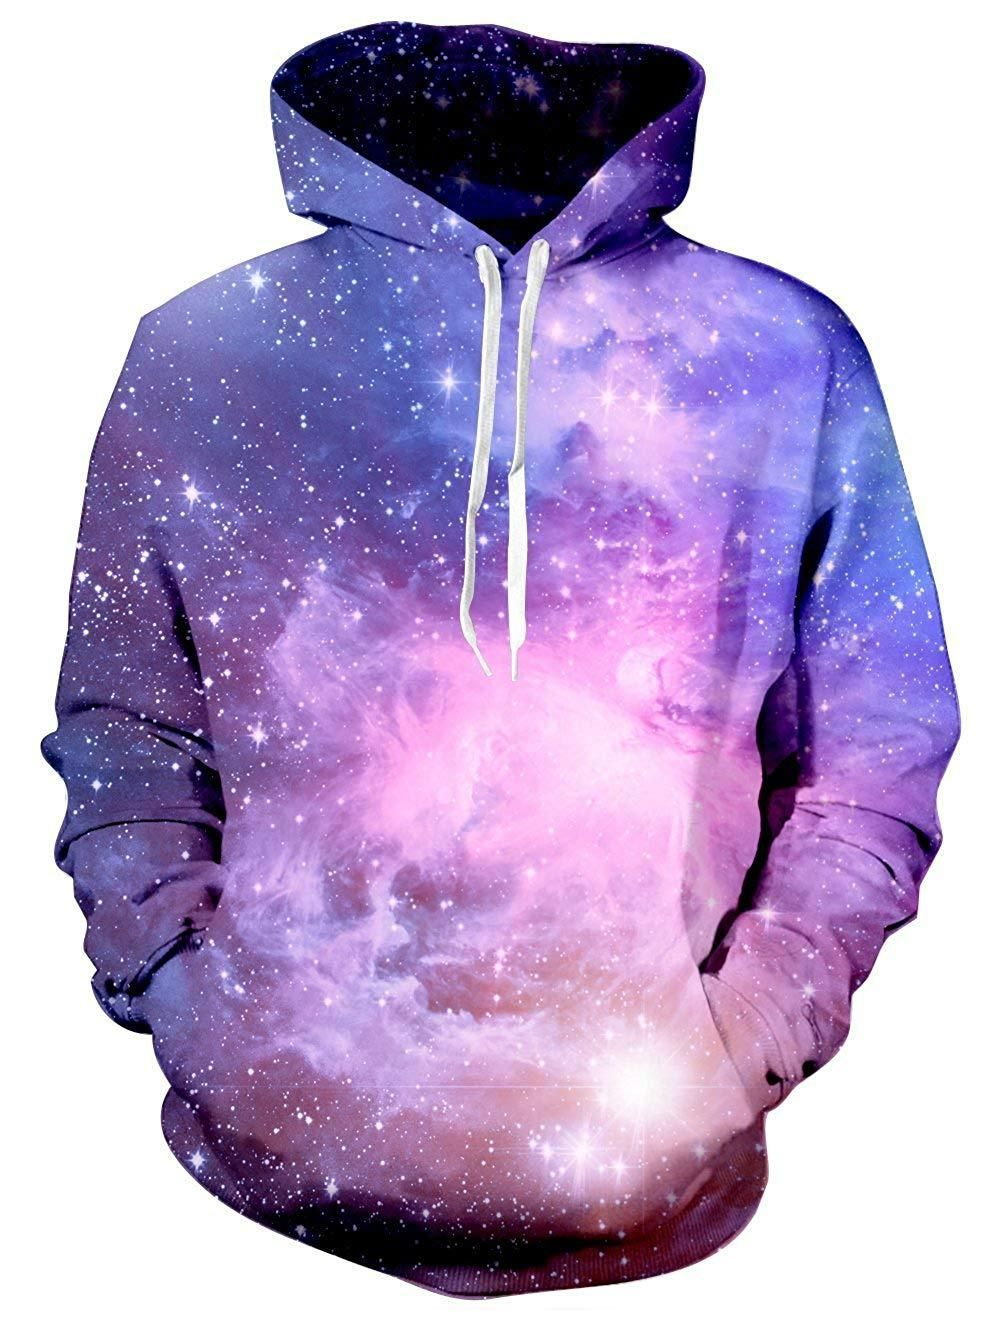 Fashion Hoodies for Men,Unisex Realistic 3D Print Galaxy Pullover Hoodie Funny Pattern Hooded Sweatshirts with Pockets